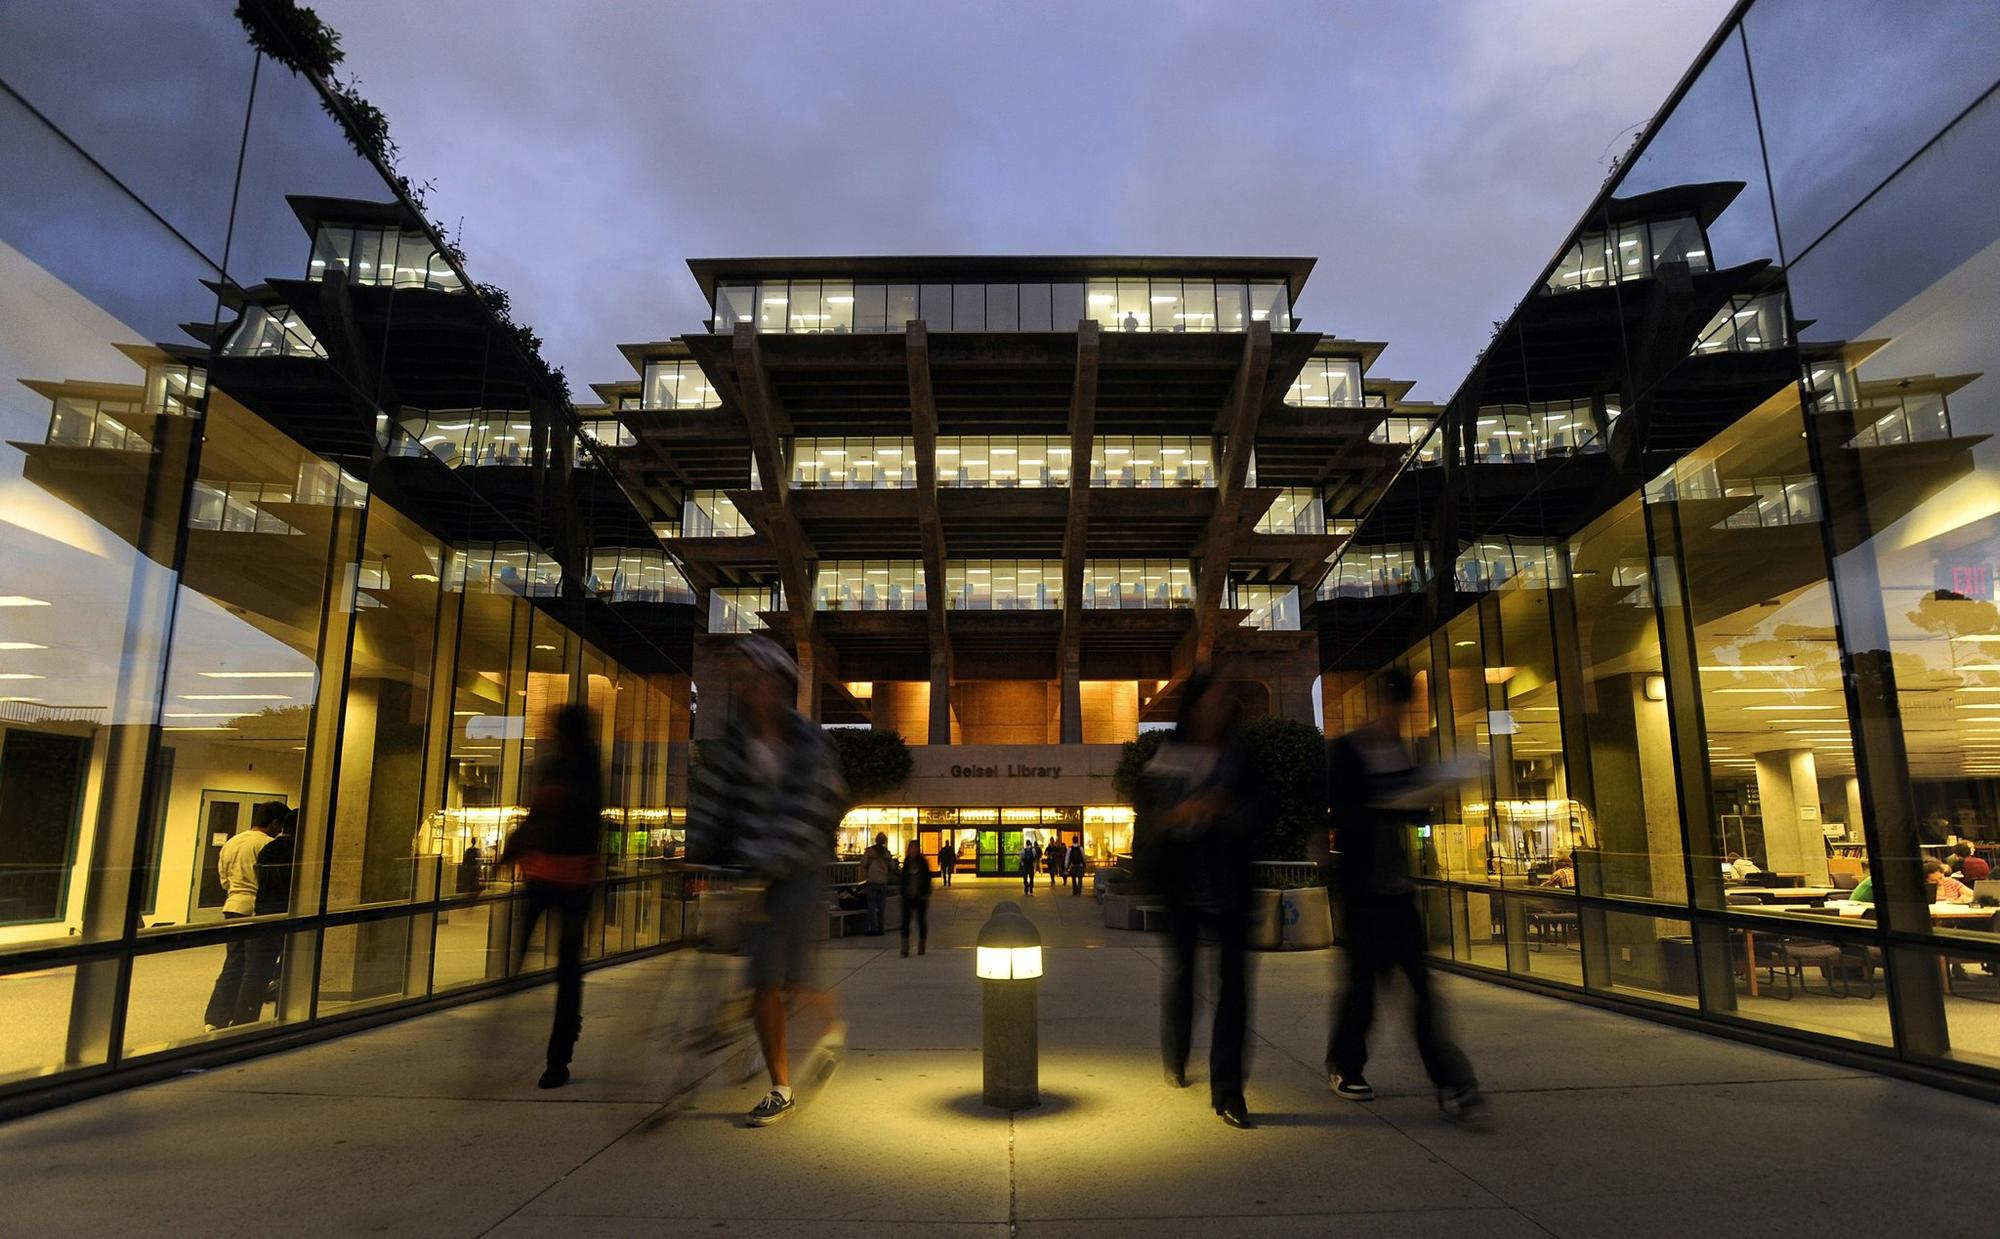 Students walk out of the Geisel Library at the University of California San Diego.